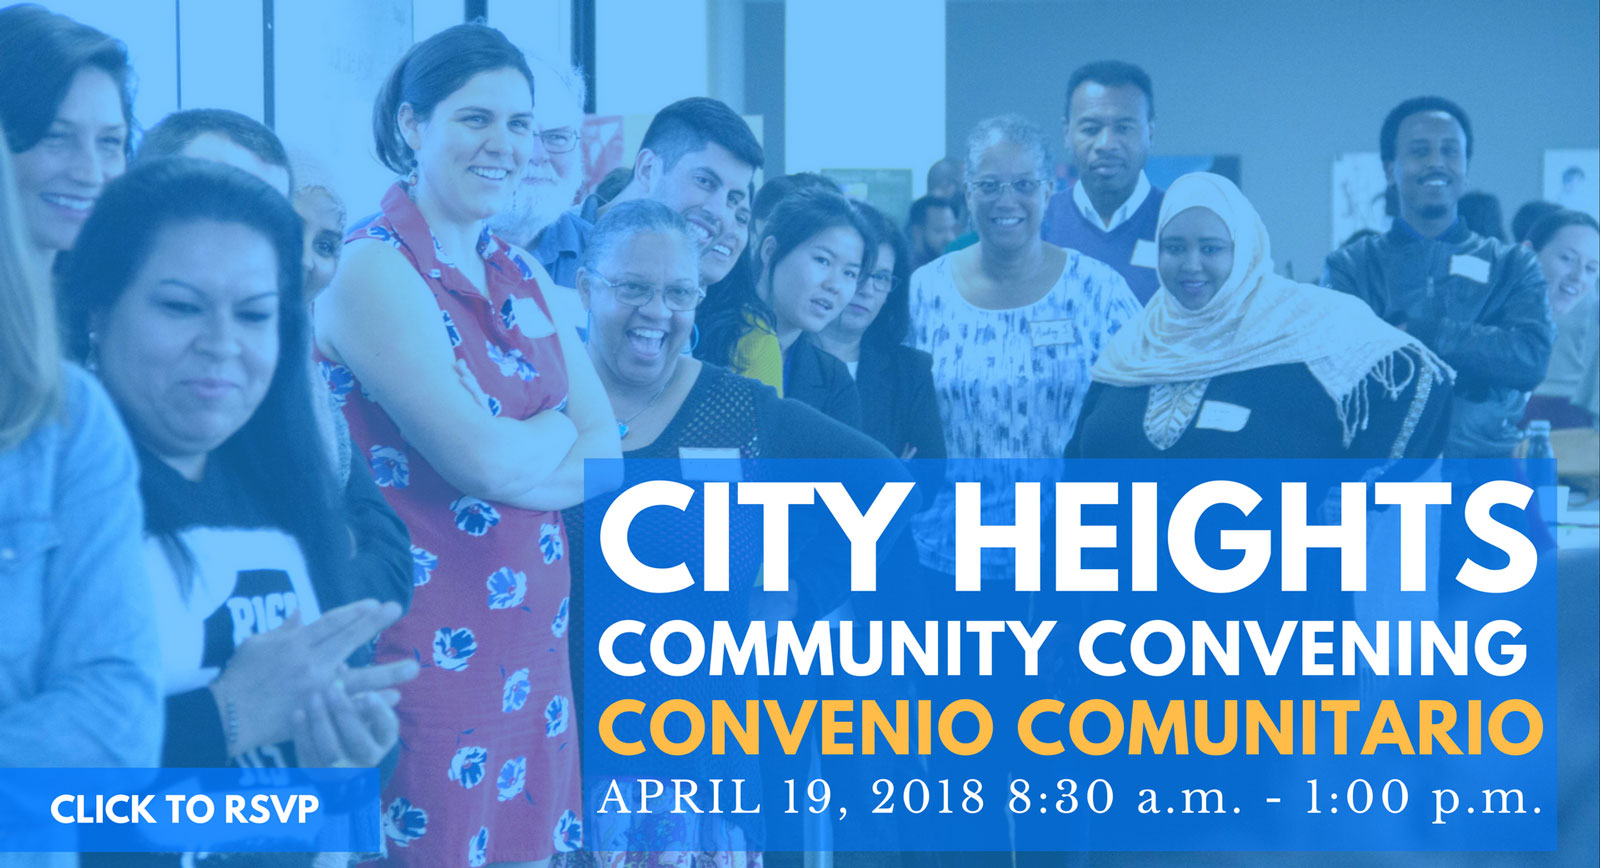 RSVP to Community Convening